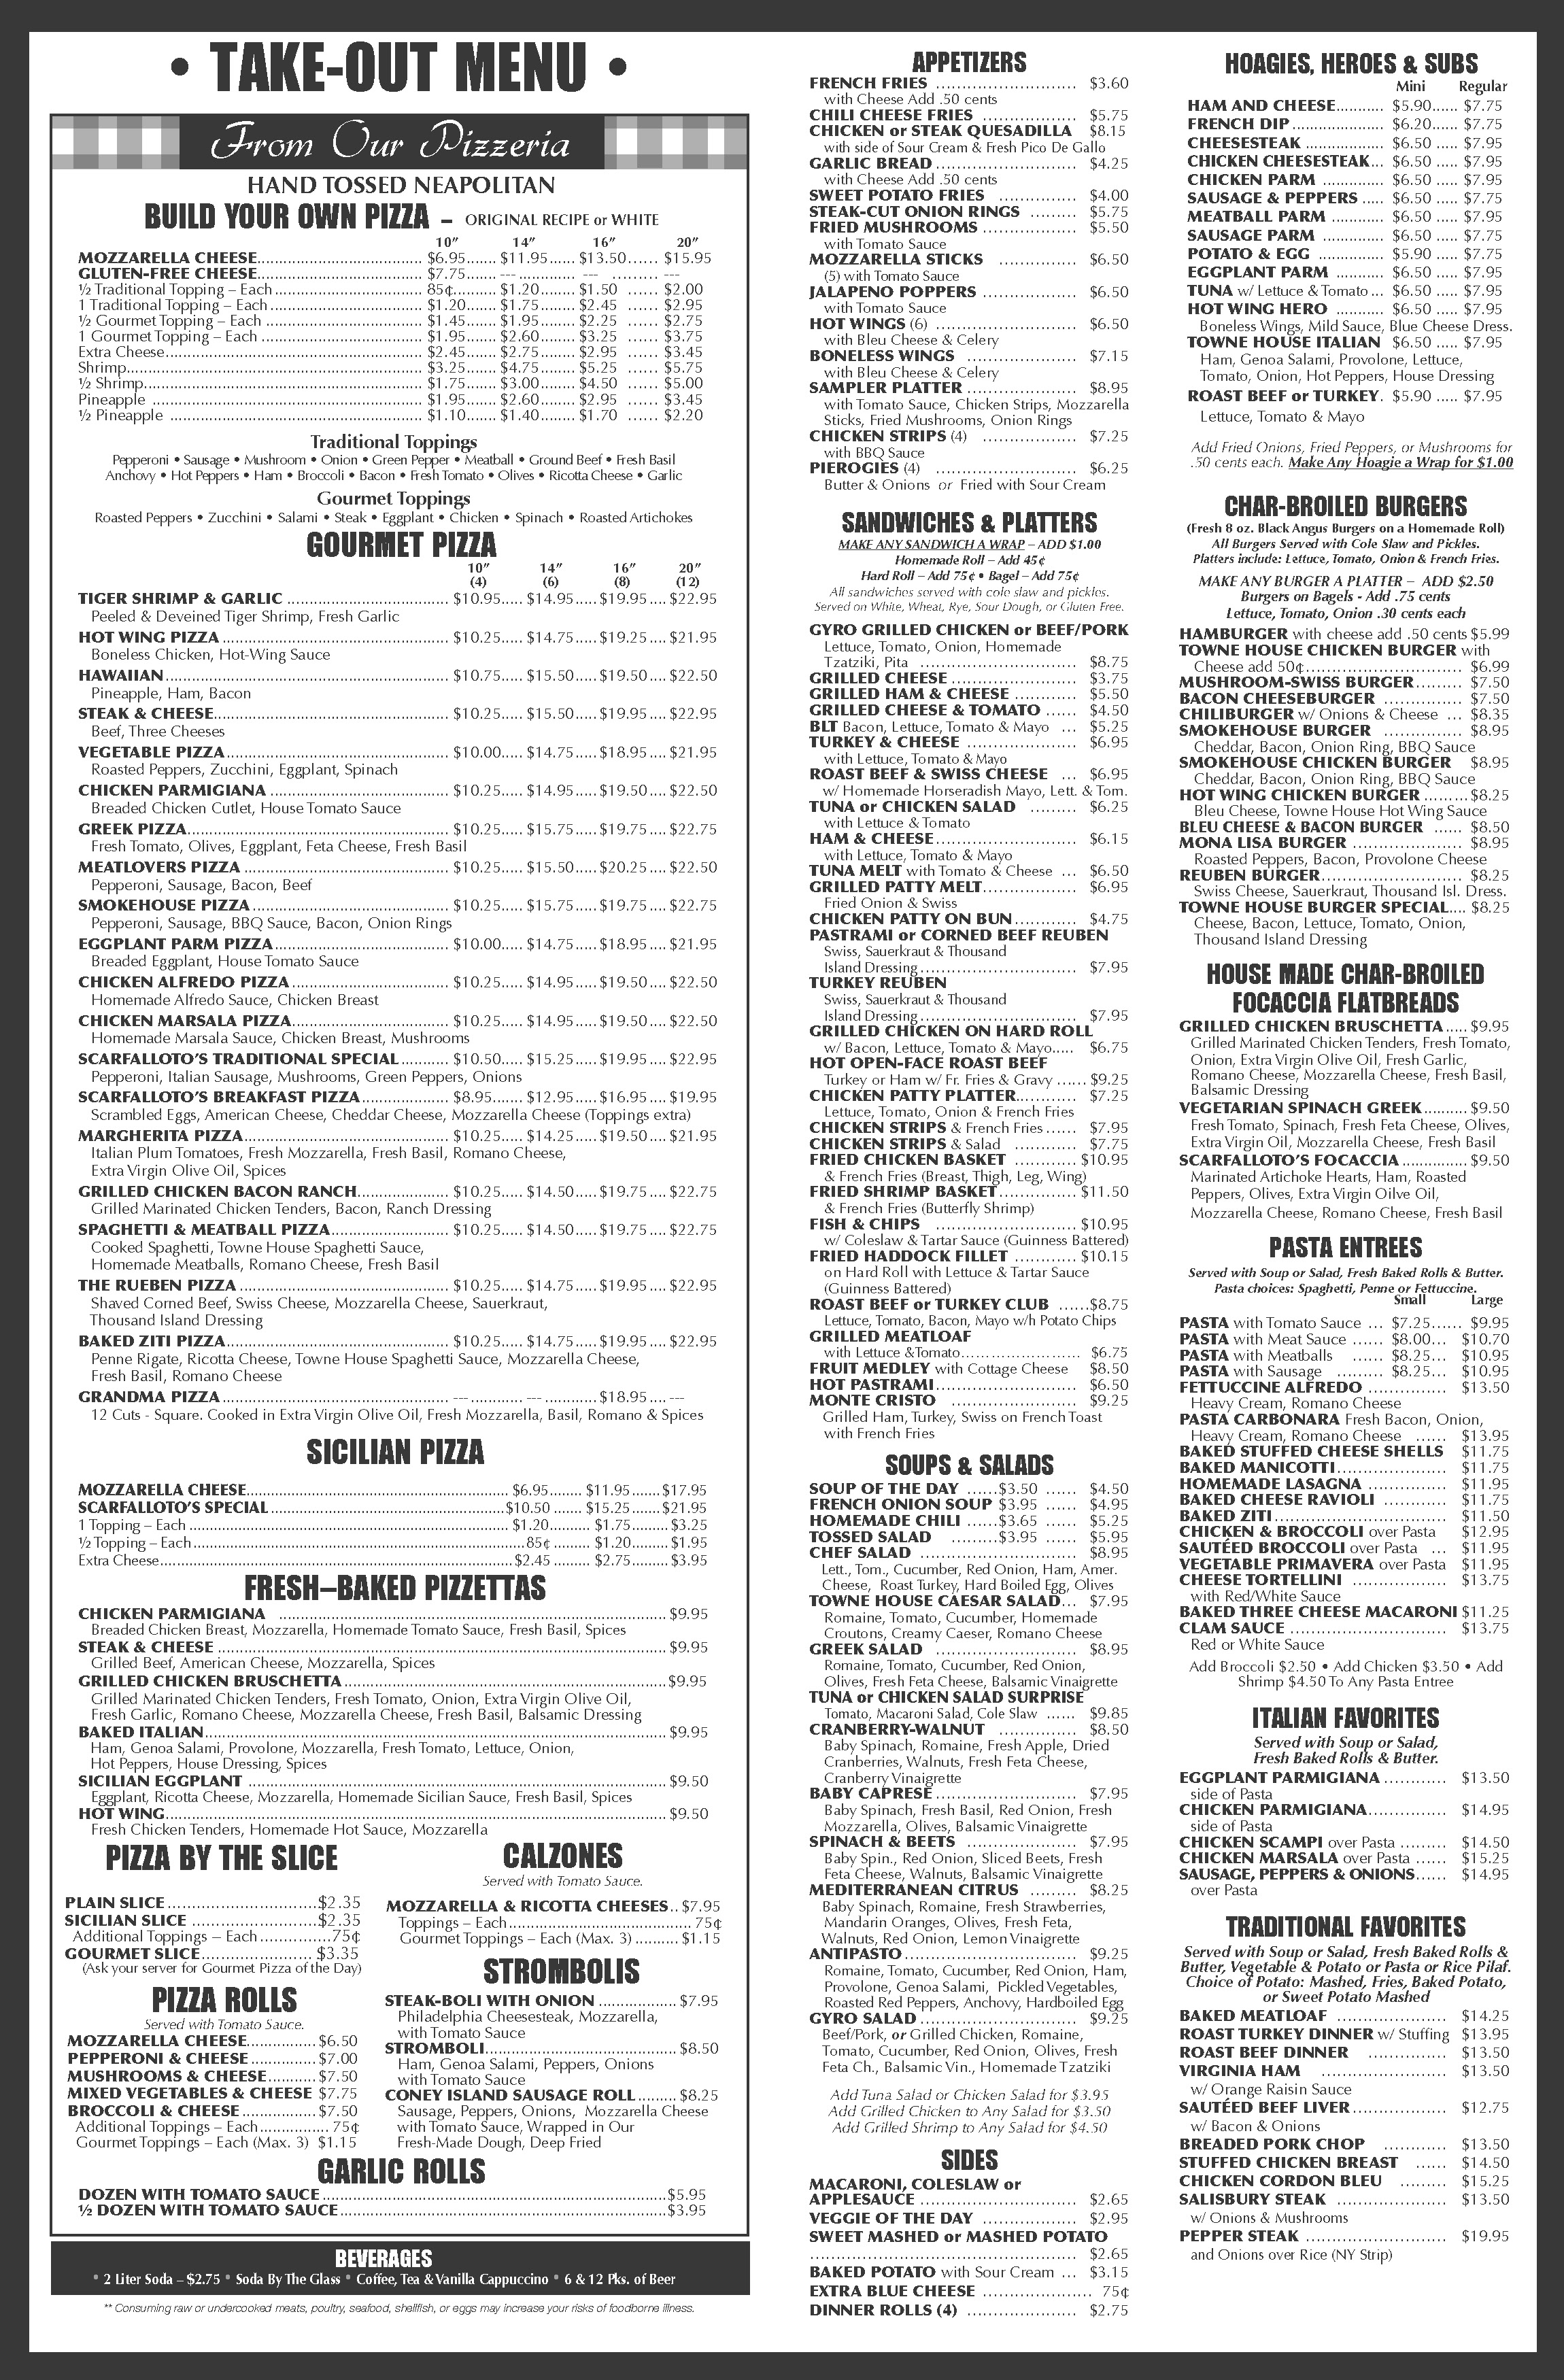 Scarfalloto's-Take Out Menu(1)_Page_2.jpg